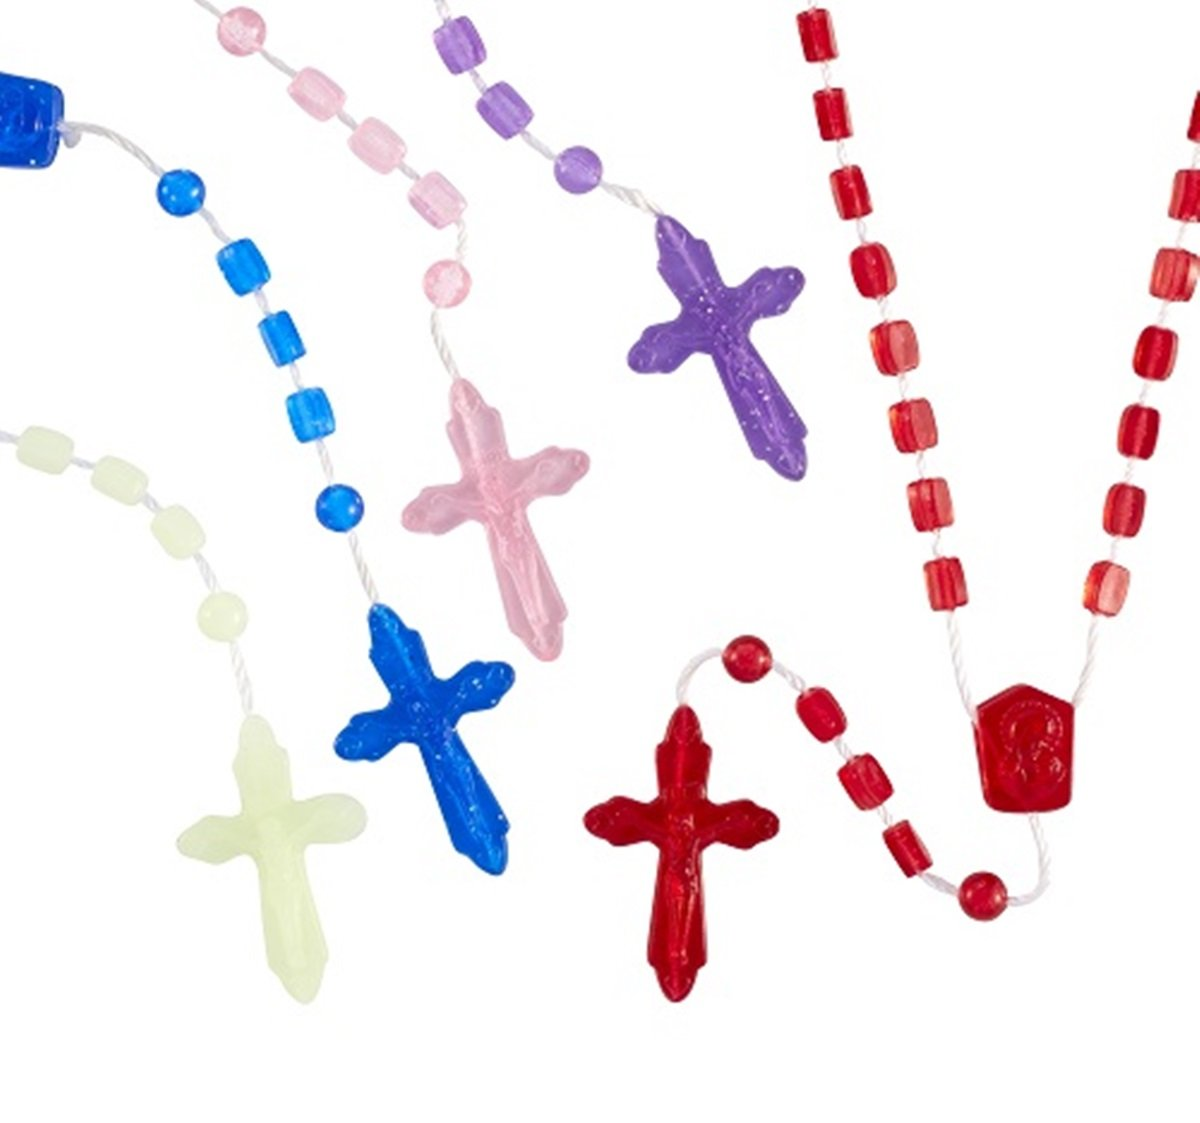 Assorted Color Catholic Prayer Bead Rosary, 12 3/4 Inch, Pack of 100 Autom